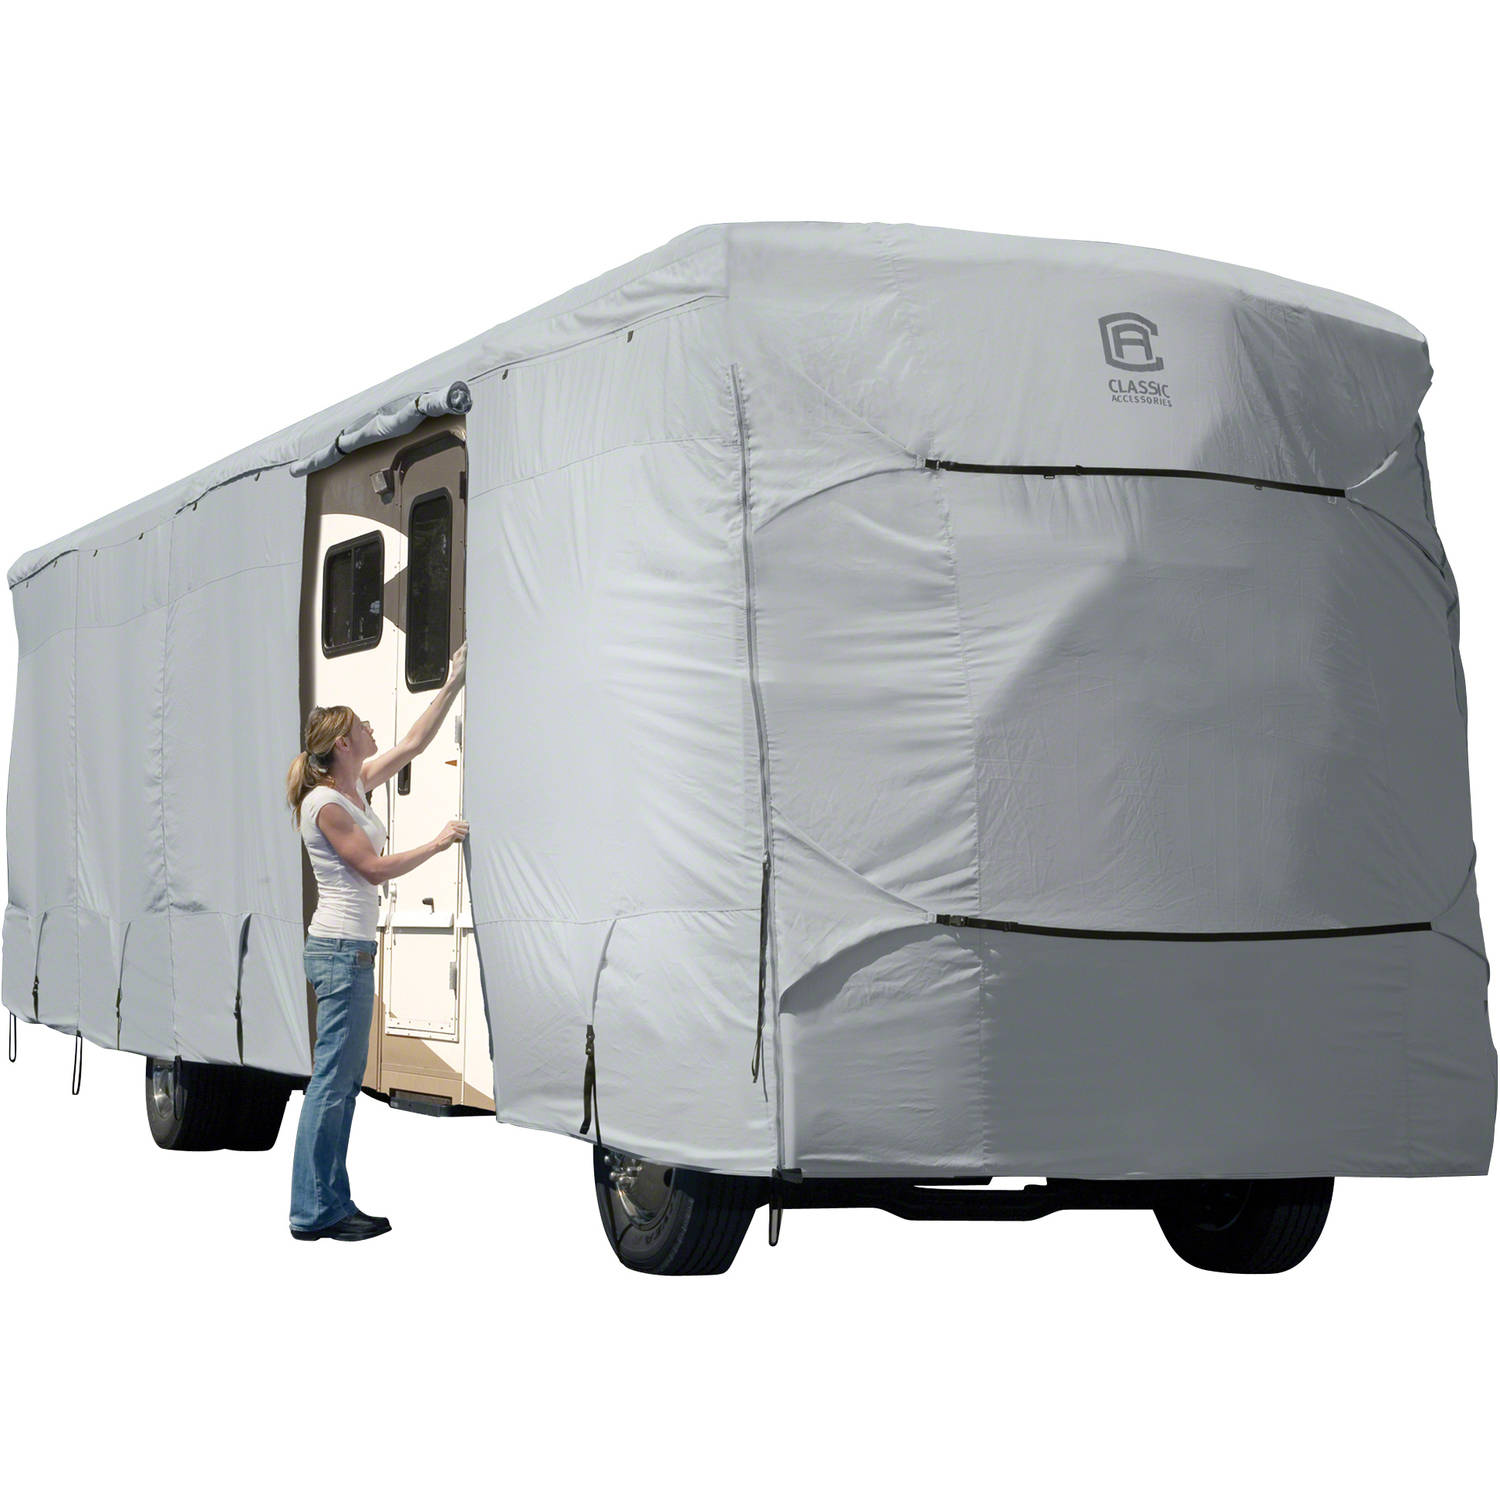 Classic Accessories OverDrive PermaPRO Deluxe Class A RV Cover, Fits 20' - 42' RVs - Lightweight Ripstop and Water Repellent RV Cover